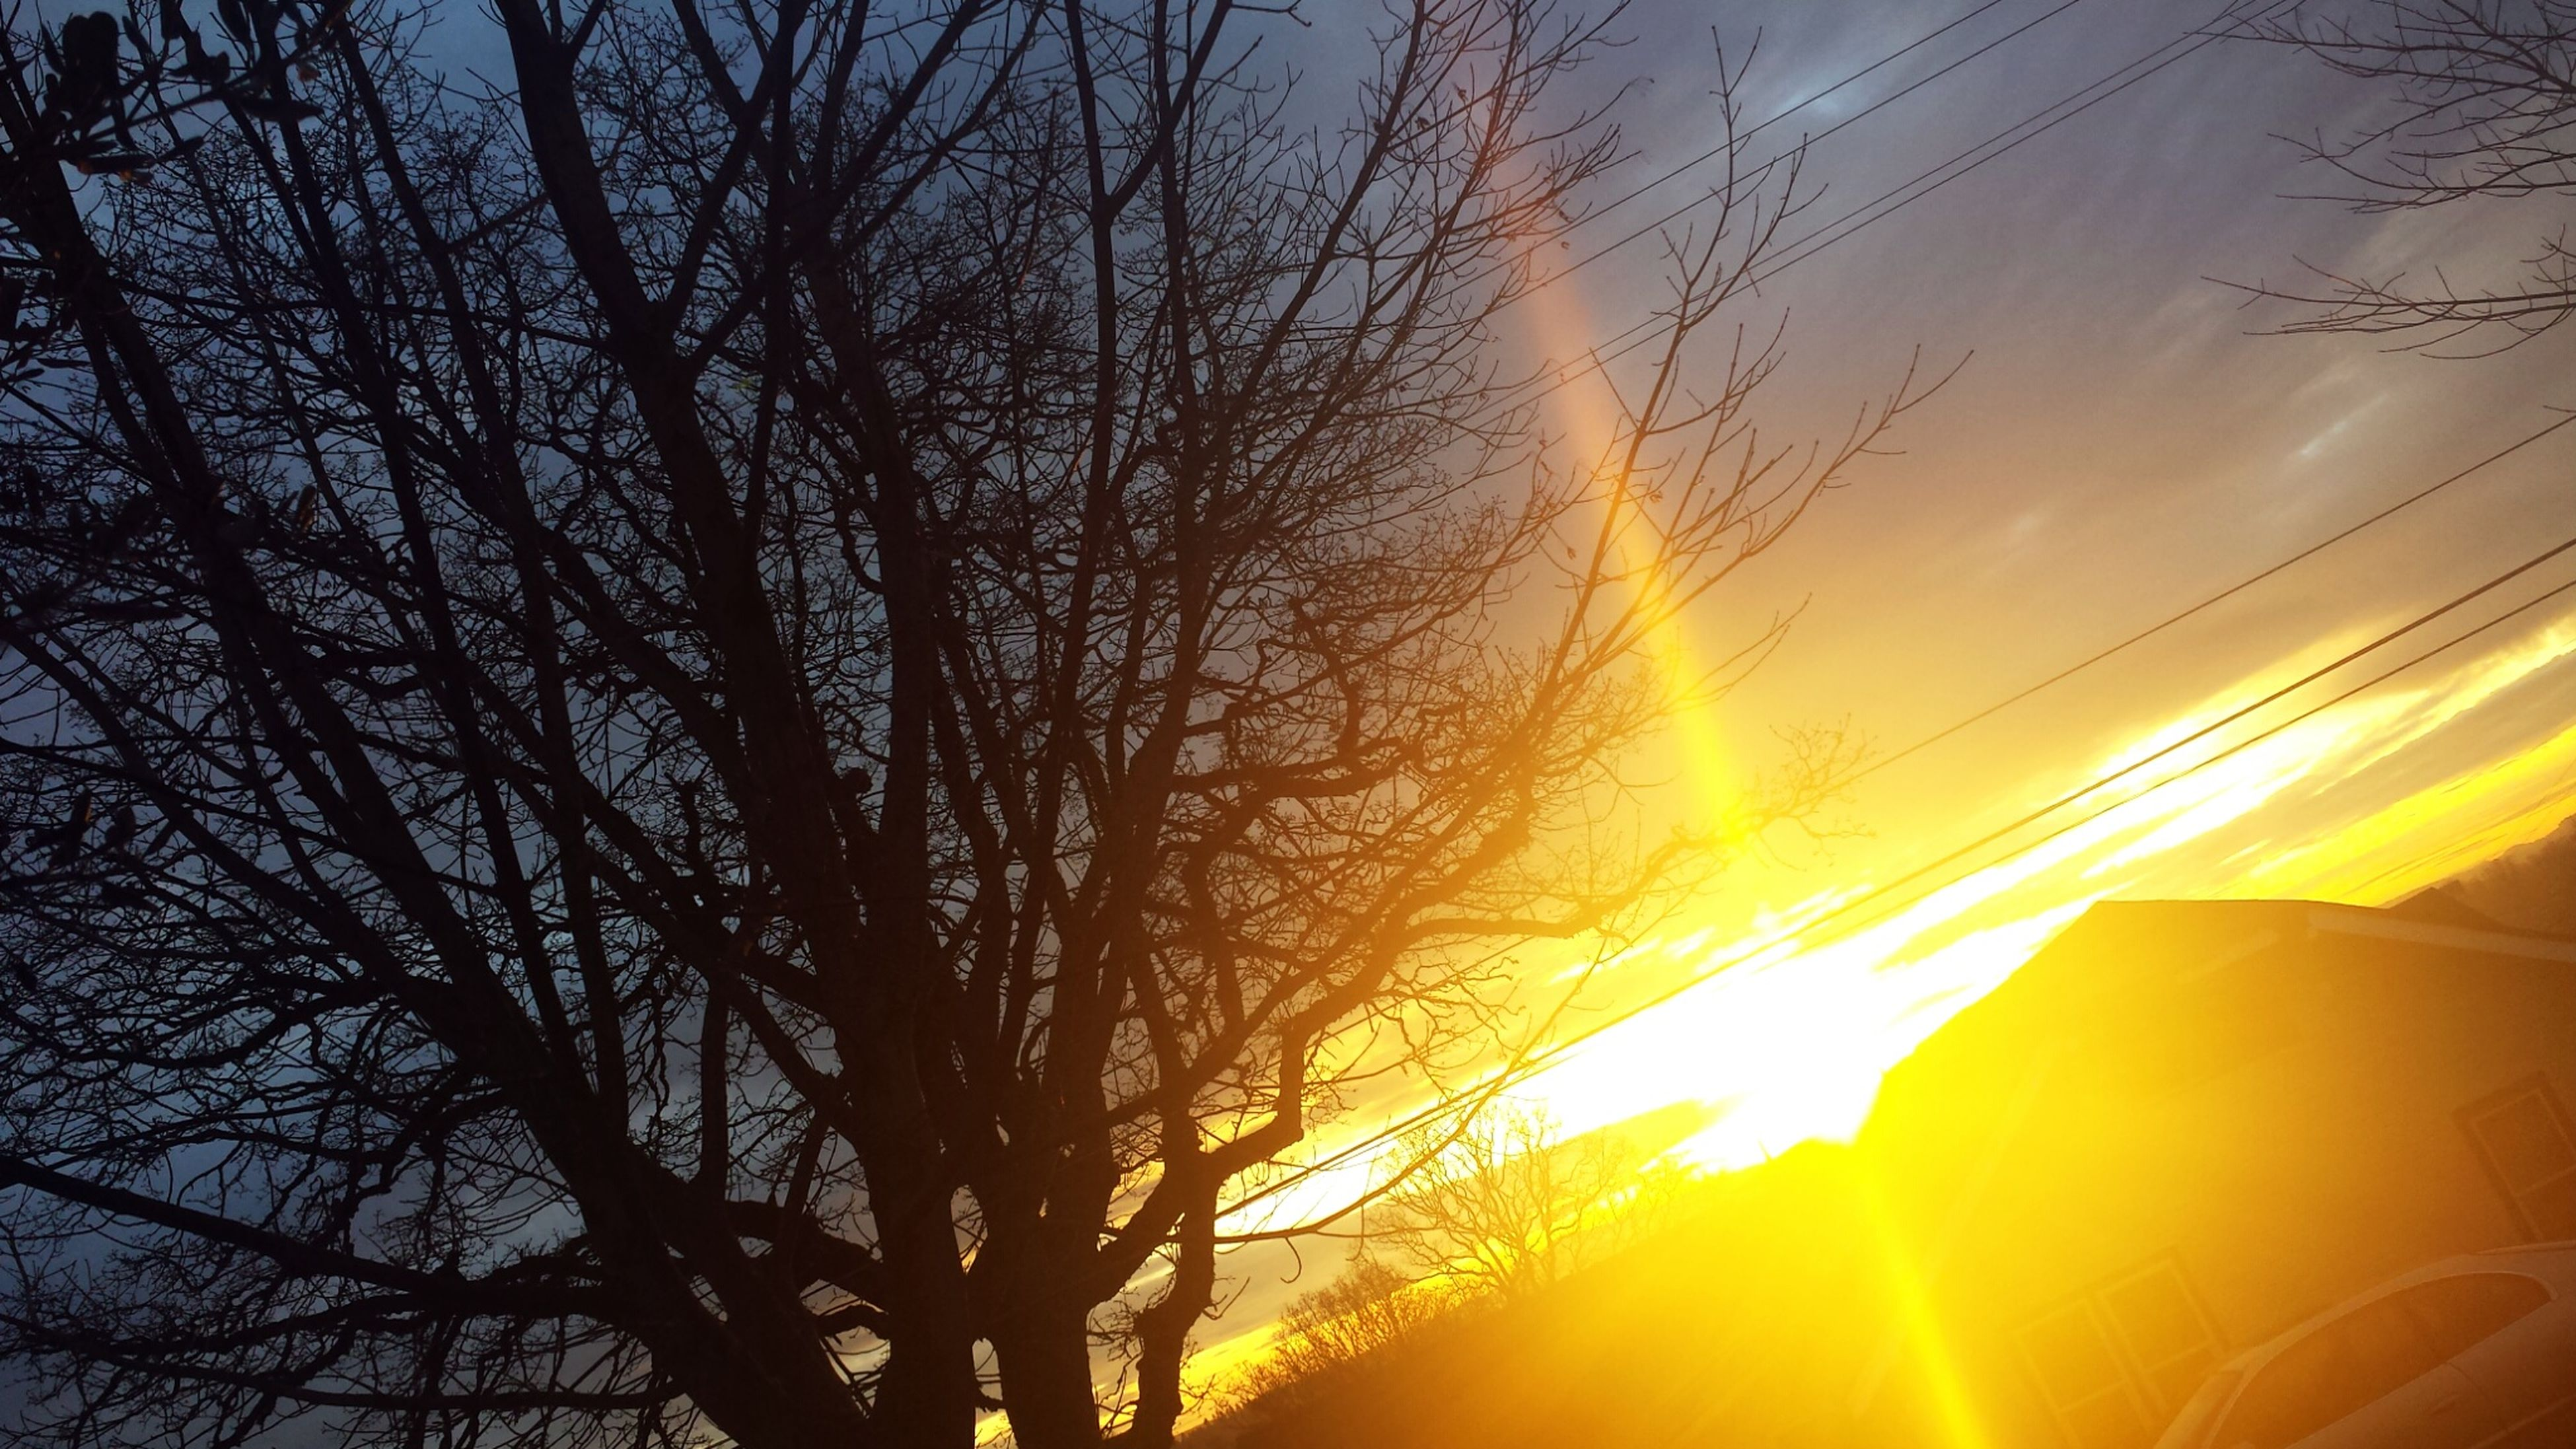 sunset, silhouette, bare tree, sky, tree, sun, orange color, low angle view, beauty in nature, scenics, tranquility, branch, nature, cloud - sky, tranquil scene, sunlight, idyllic, back lit, outdoors, yellow